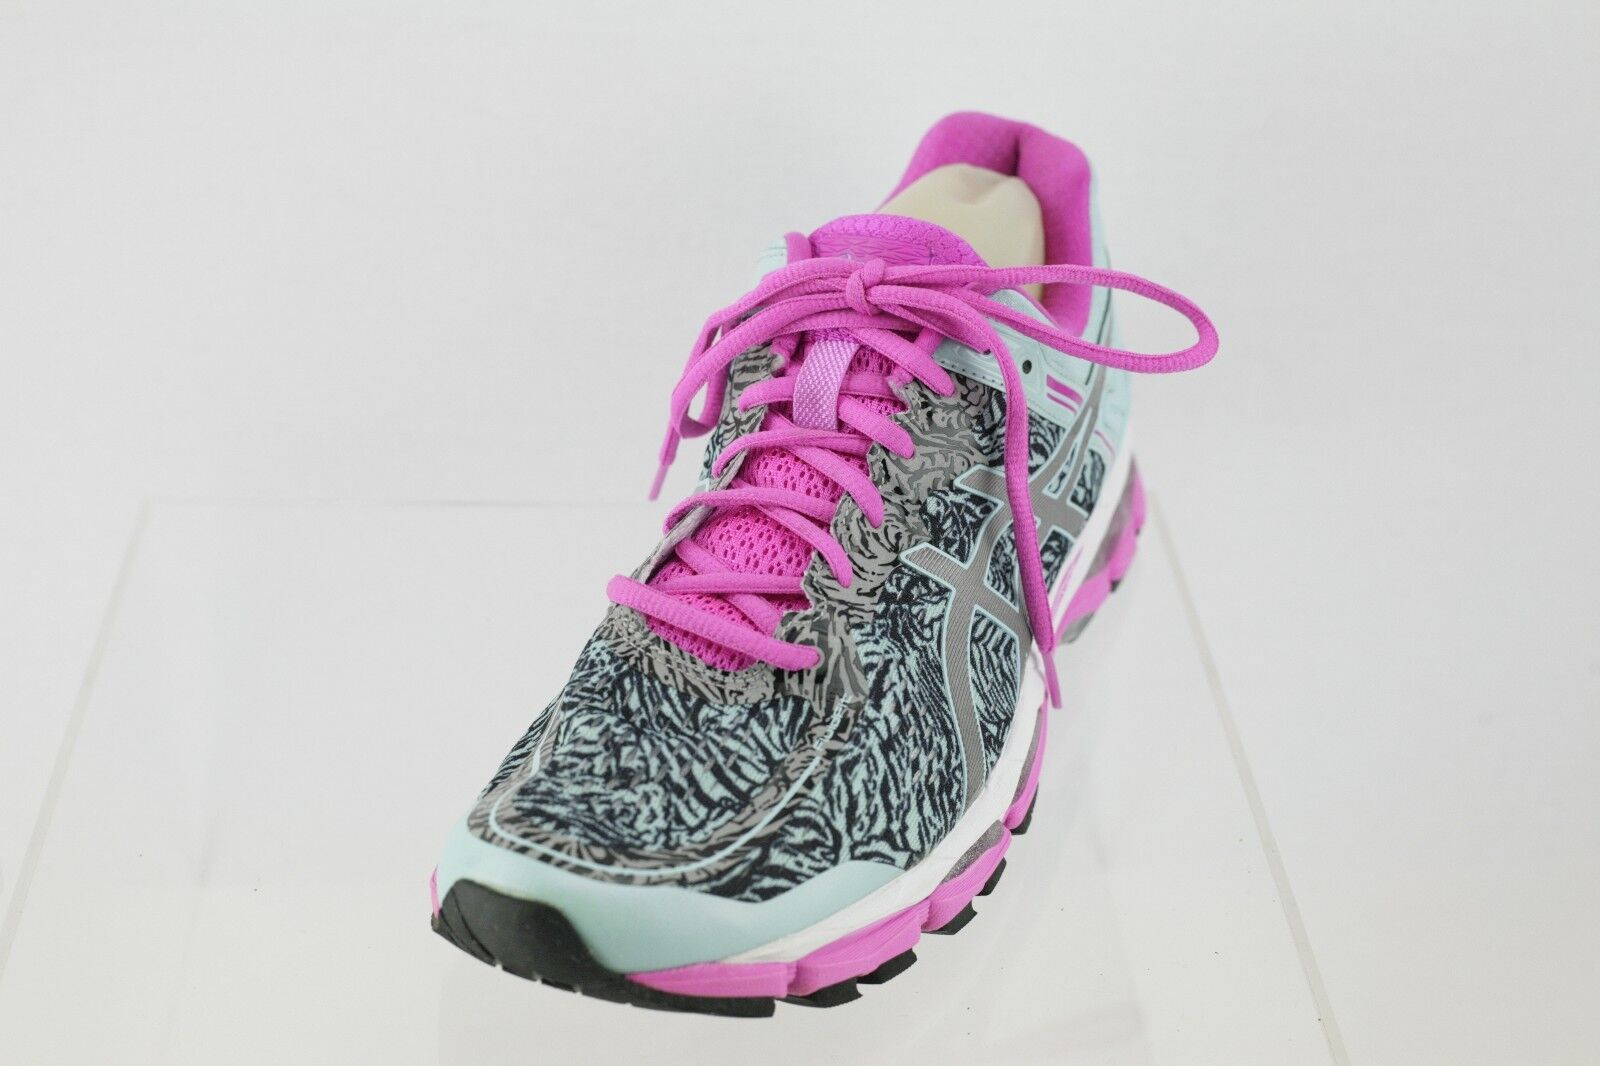 Women's Asics T5A6N Turquoise Pink Lace-up Running shoes Size 11.5 M